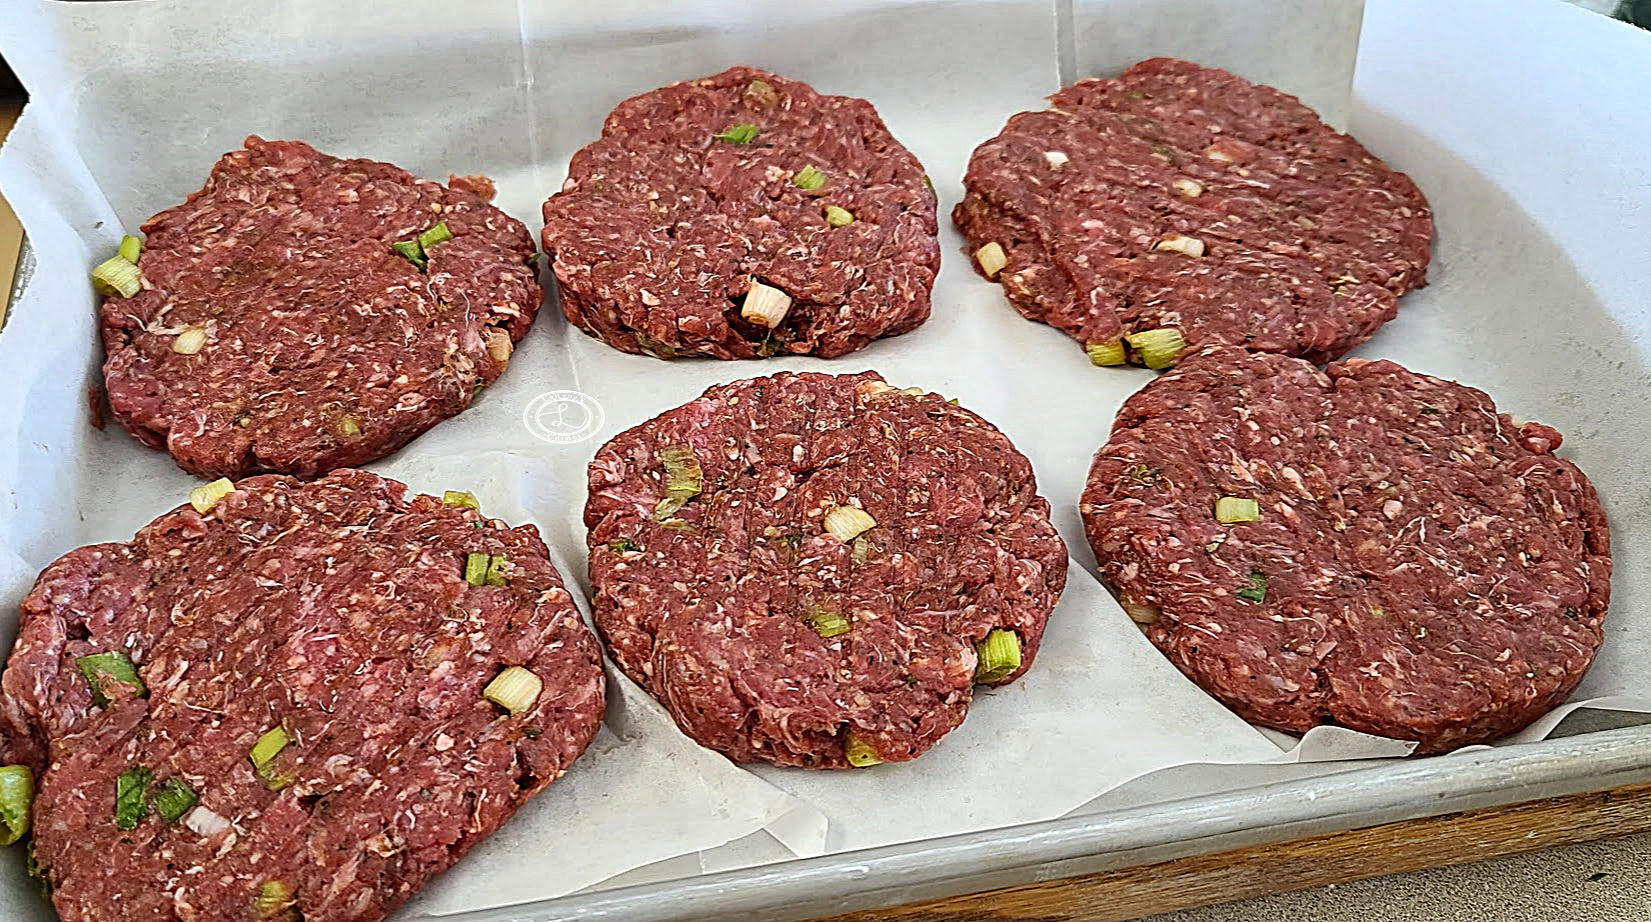 Meat made into burgers